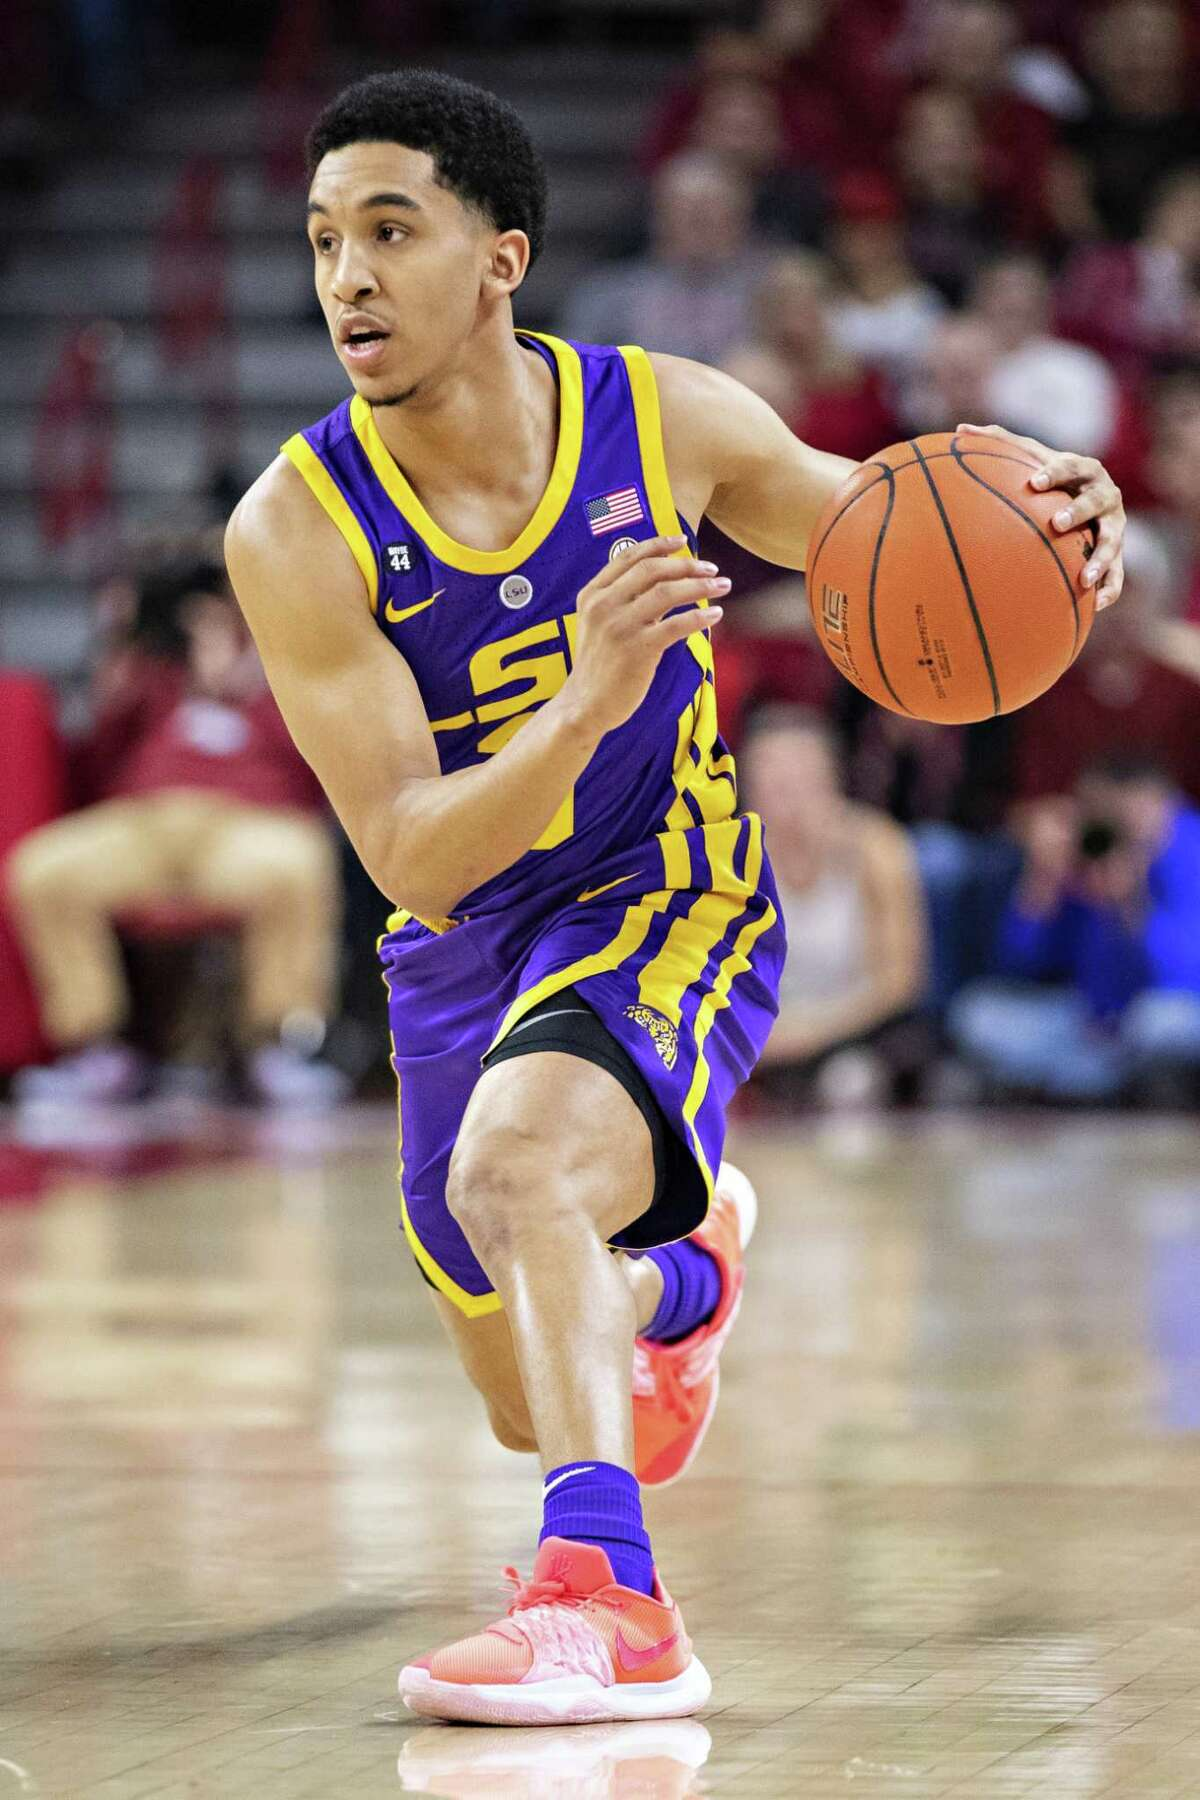 LSU's Tremont Waters, a New Haven native, hopes to hear his name called in the NBA draft.